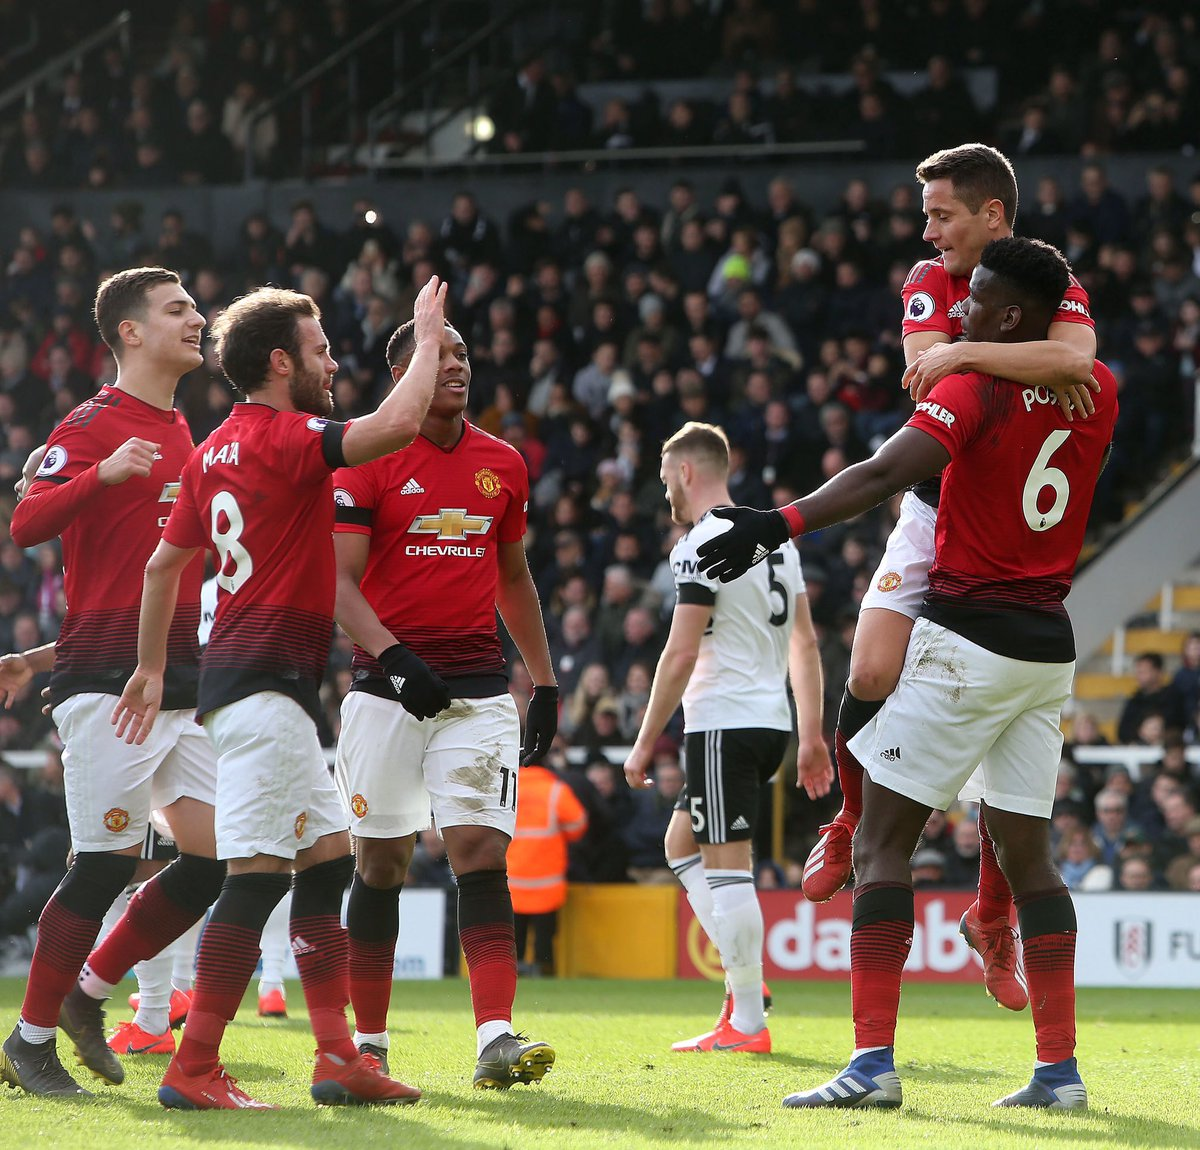 Three massive points for us at Fulham 🔴😉